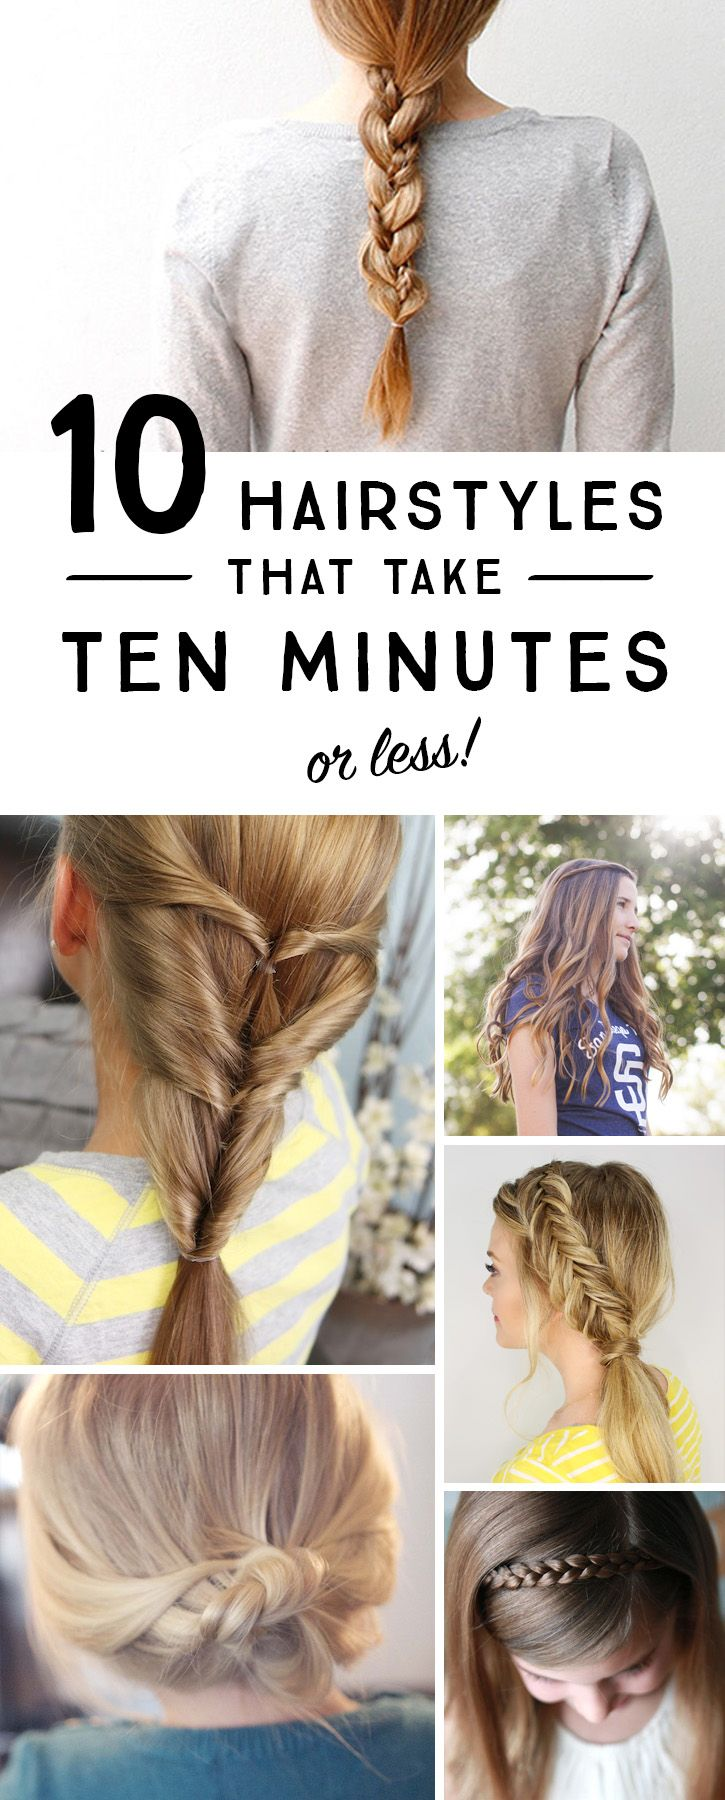 Streamline the morning hair routine with these 10 simple hairstyles that take 10 minutes or less! #spon